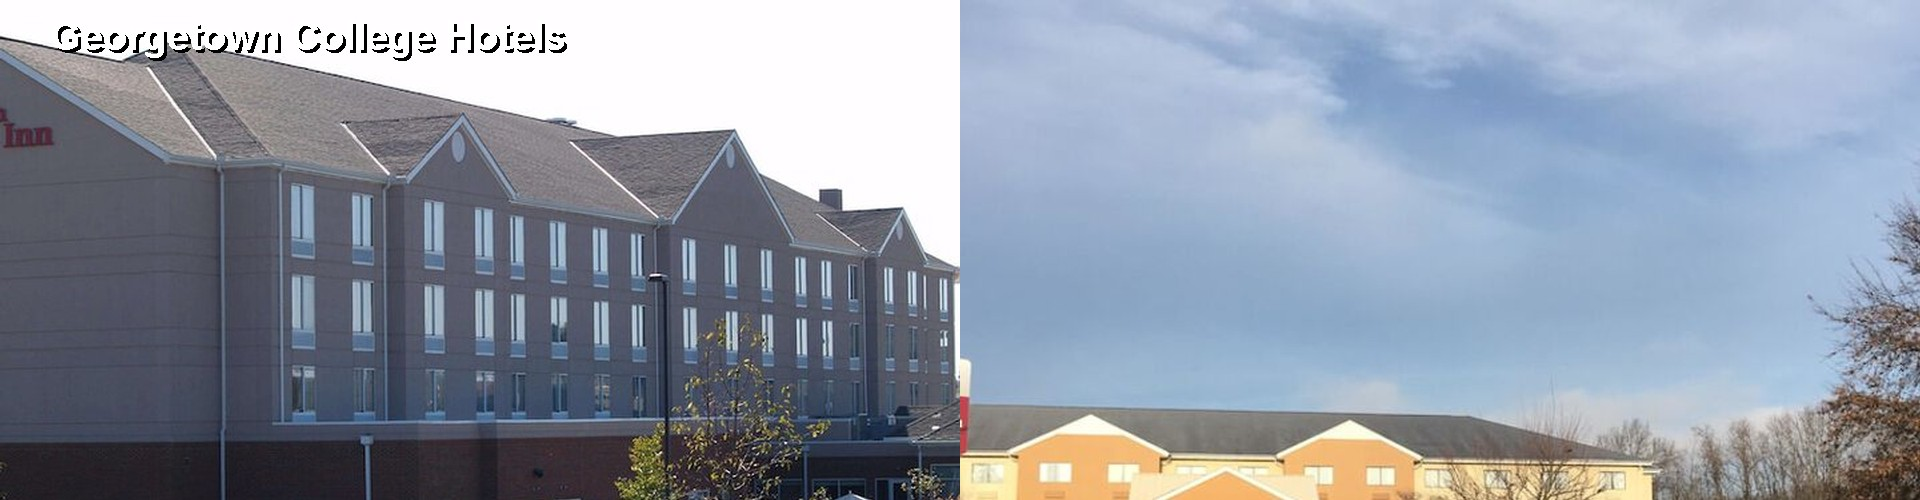 5 Best Hotels near Georgetown College